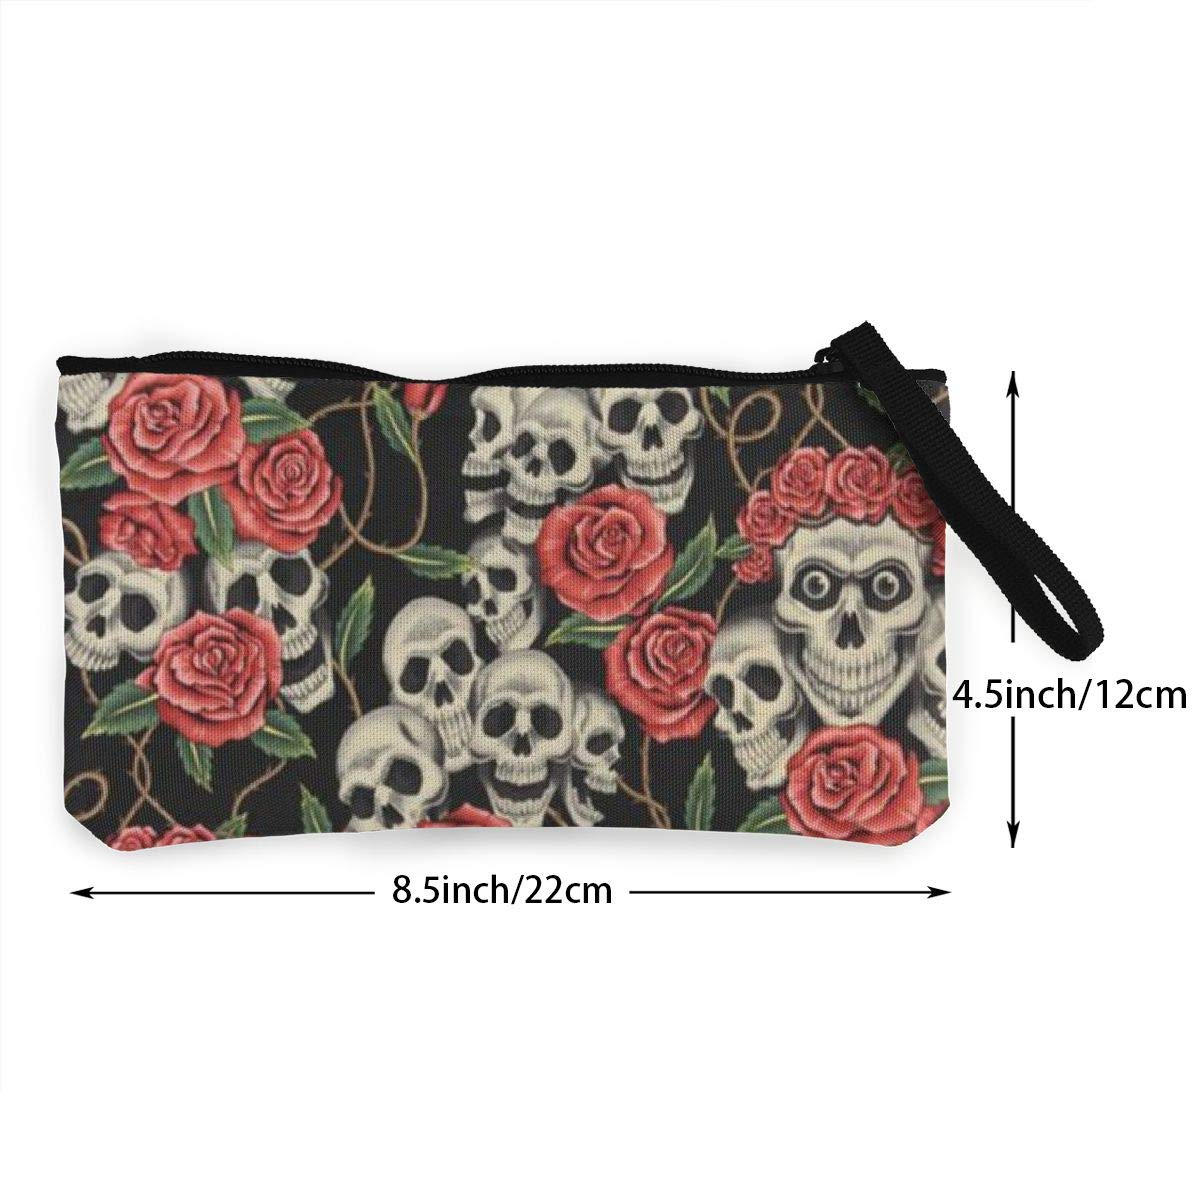 Coin Pouch Rose Skull Red Canvas Coin Purse Cellphone Card Bag With Handle And Zipper